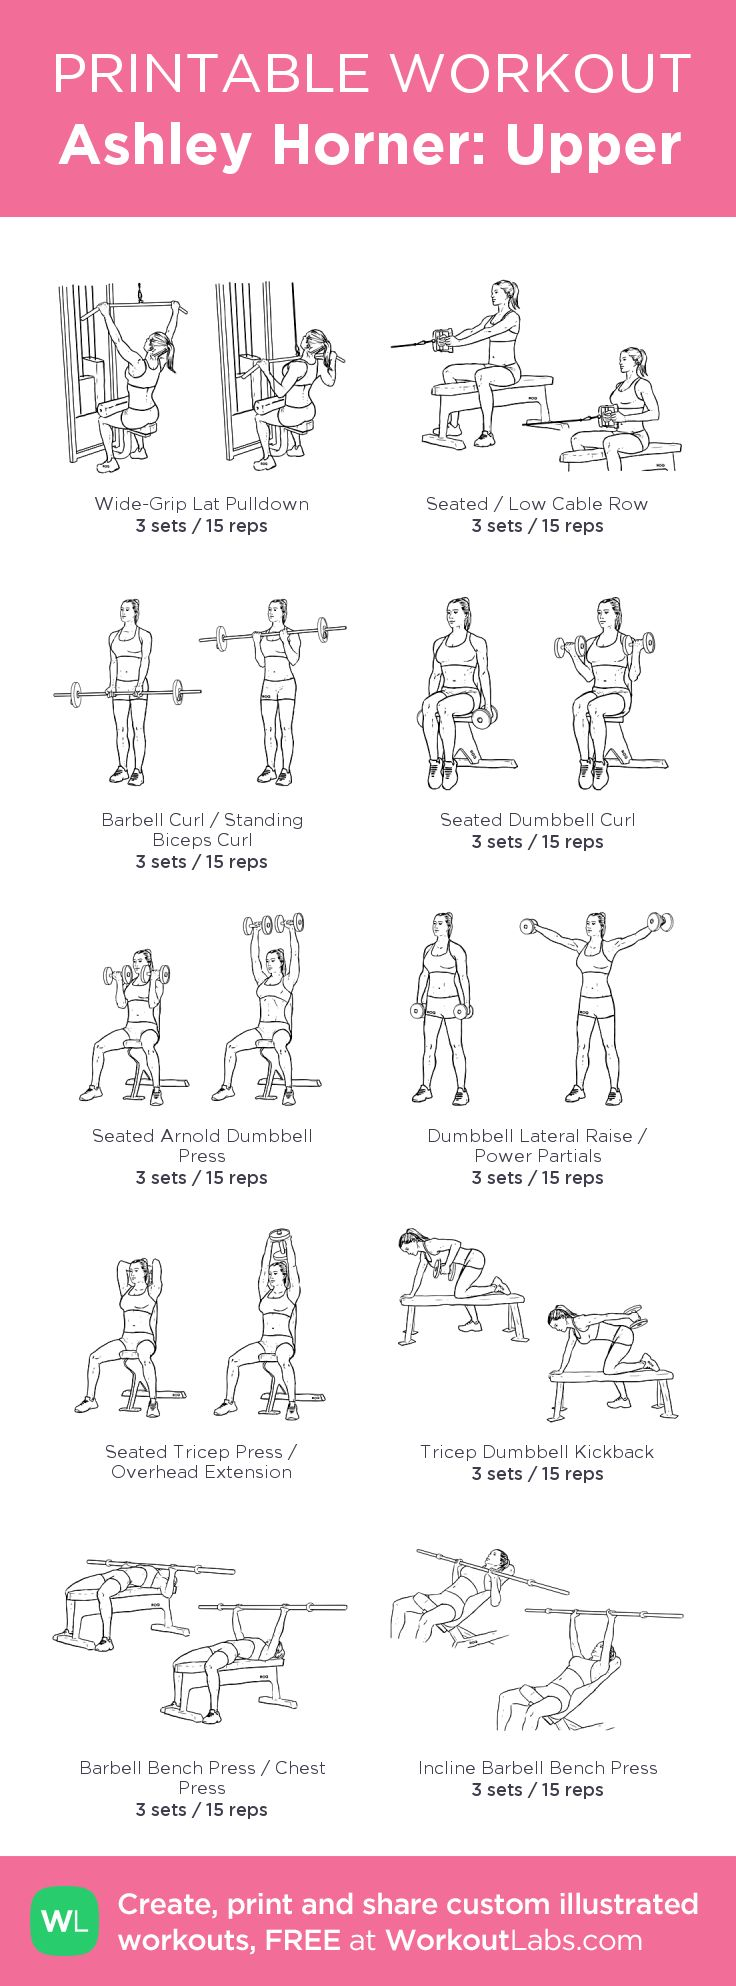 Ashley Horner: Upper: my visual workout created at WorkoutLabs.com • Click through to customize and download as a FREE PDF! #customworkout